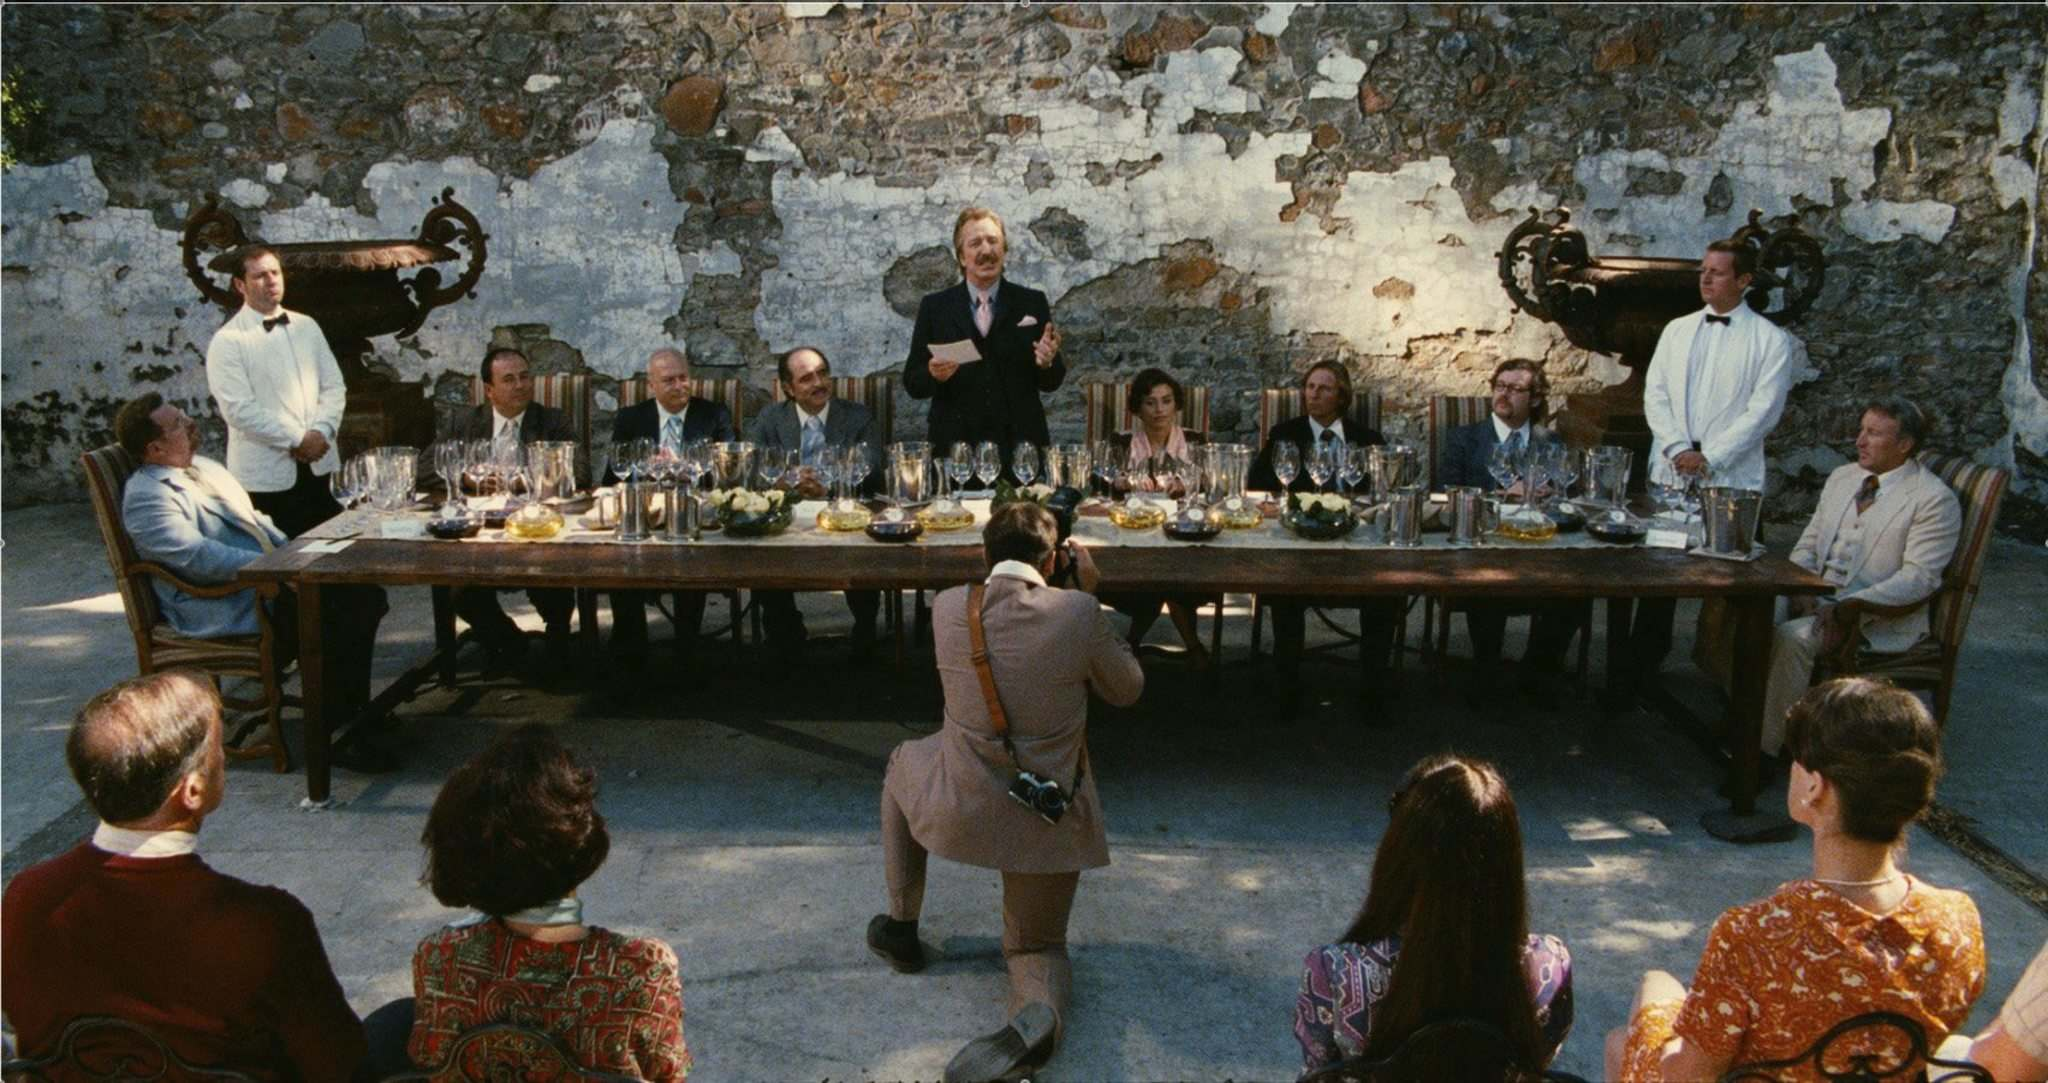 ALLIANCE FILMS</p><p>Alan Rickman (centre, standing) in a scene from the 2008 film Bottle Shock, which dramatized California&#39;s emergence on the global wine scene. Canadian vintners are trying to emulate the California success story.</p>